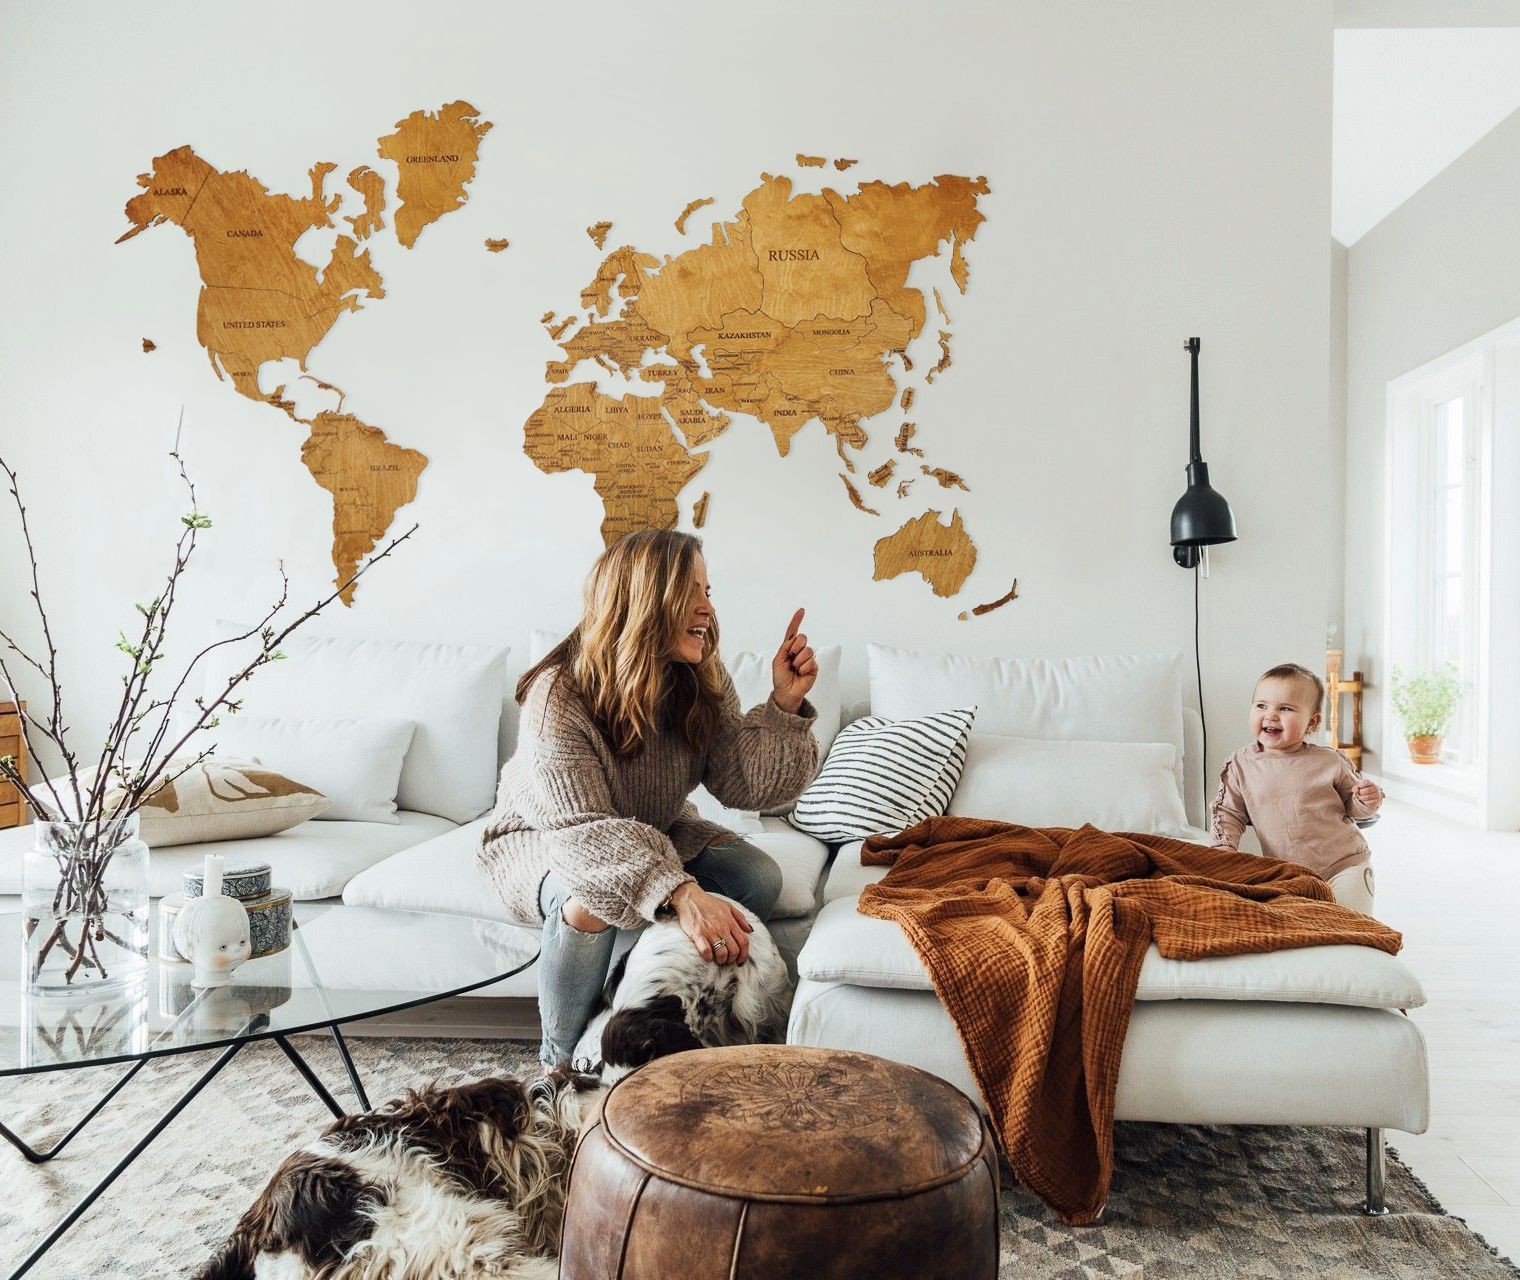 Rustic Wall Map World Travel Map World Map Wall Art World Map Etsy In 2020 Living Room Decor Rustic Map Decor Home Decor Paintings #rustic #paintings #for #living #room